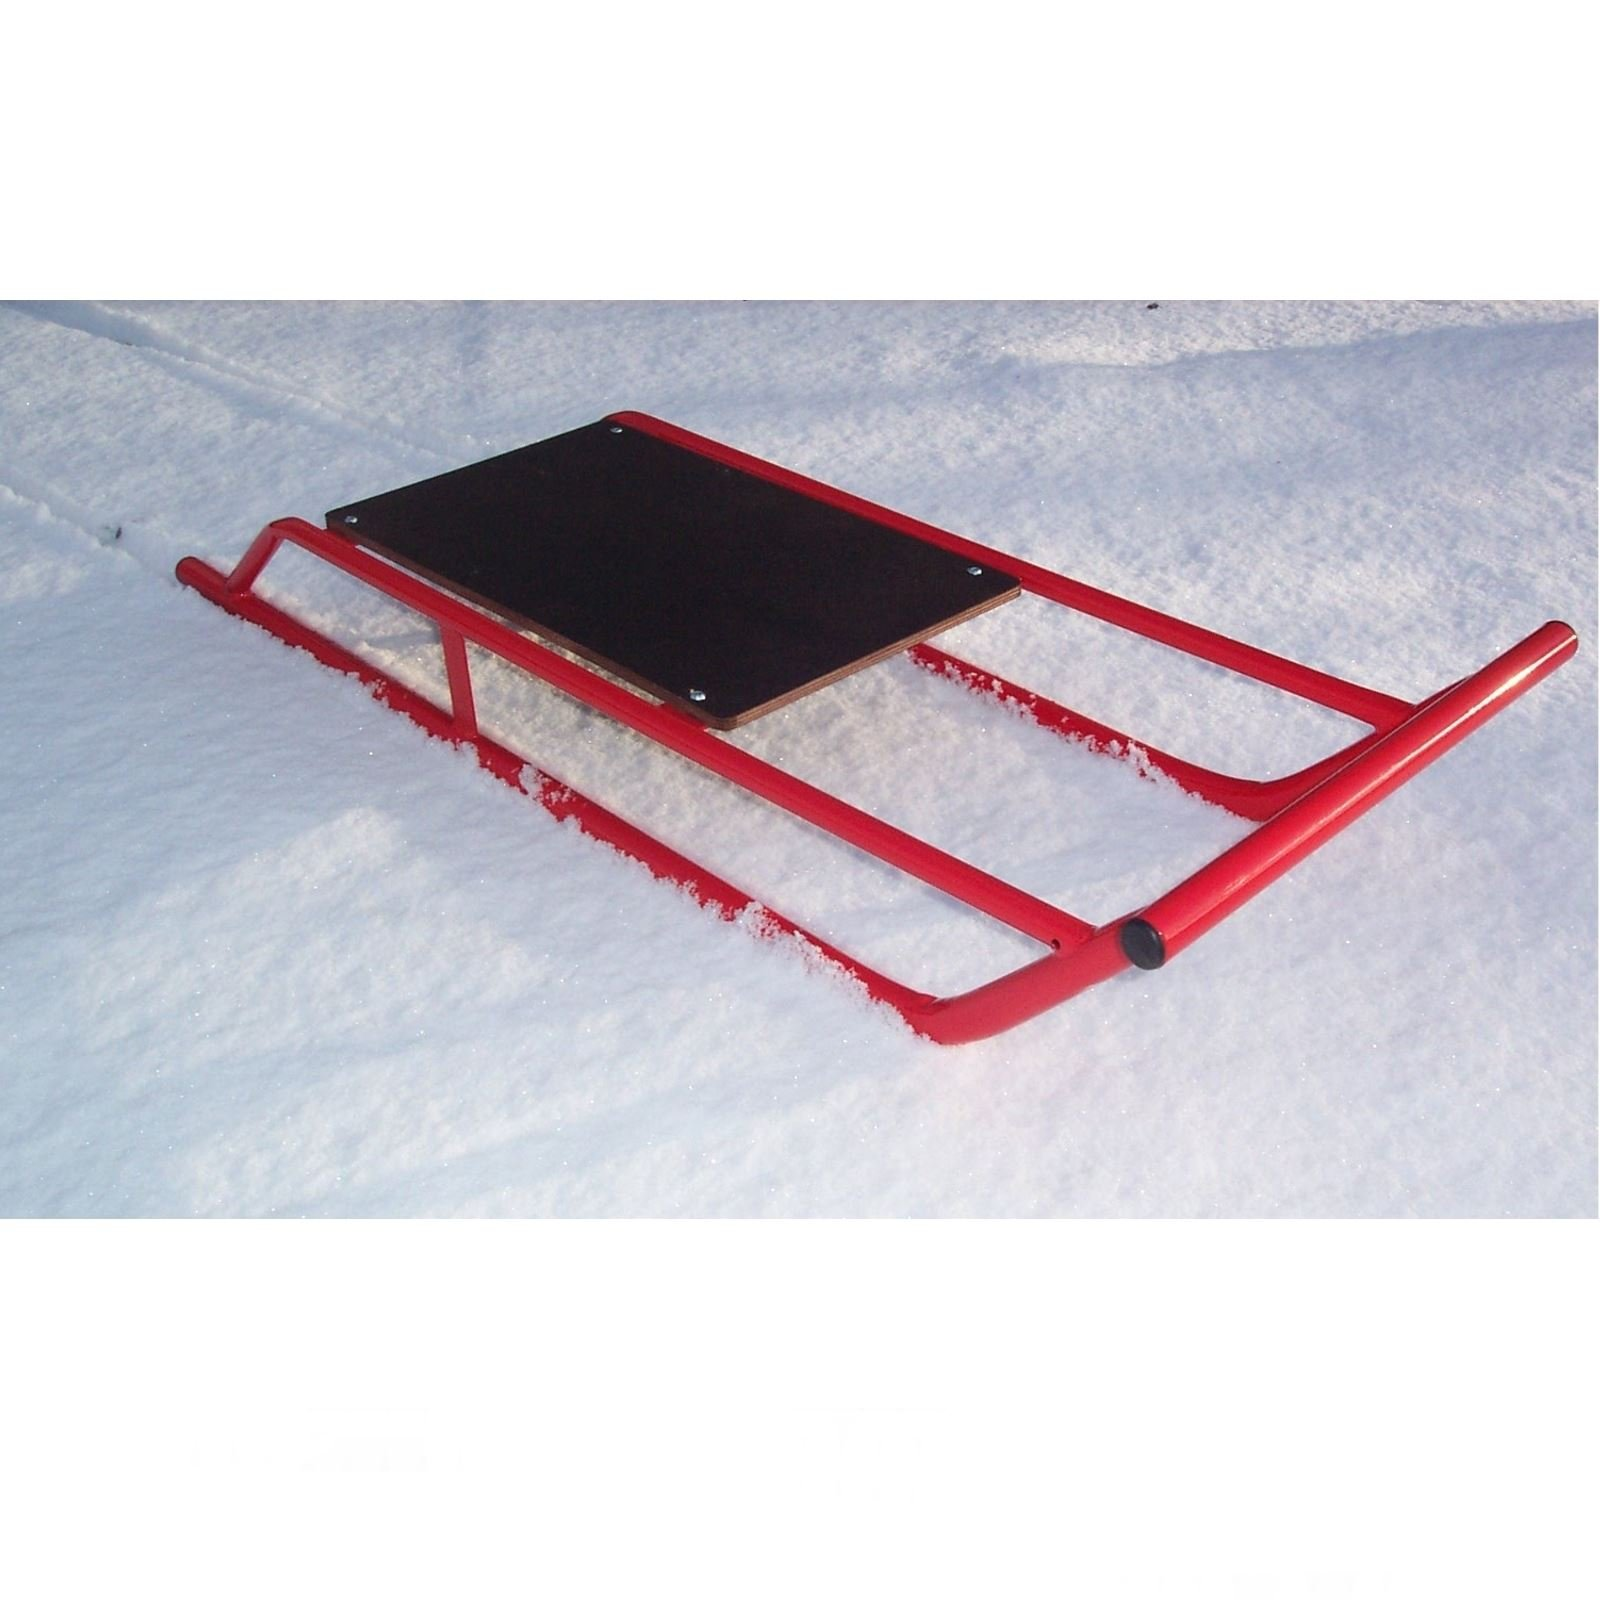 Snow Sledge / Toboggan / Sleigh Steel with Wooden Top Sled / Bobsled / Bobsleigh